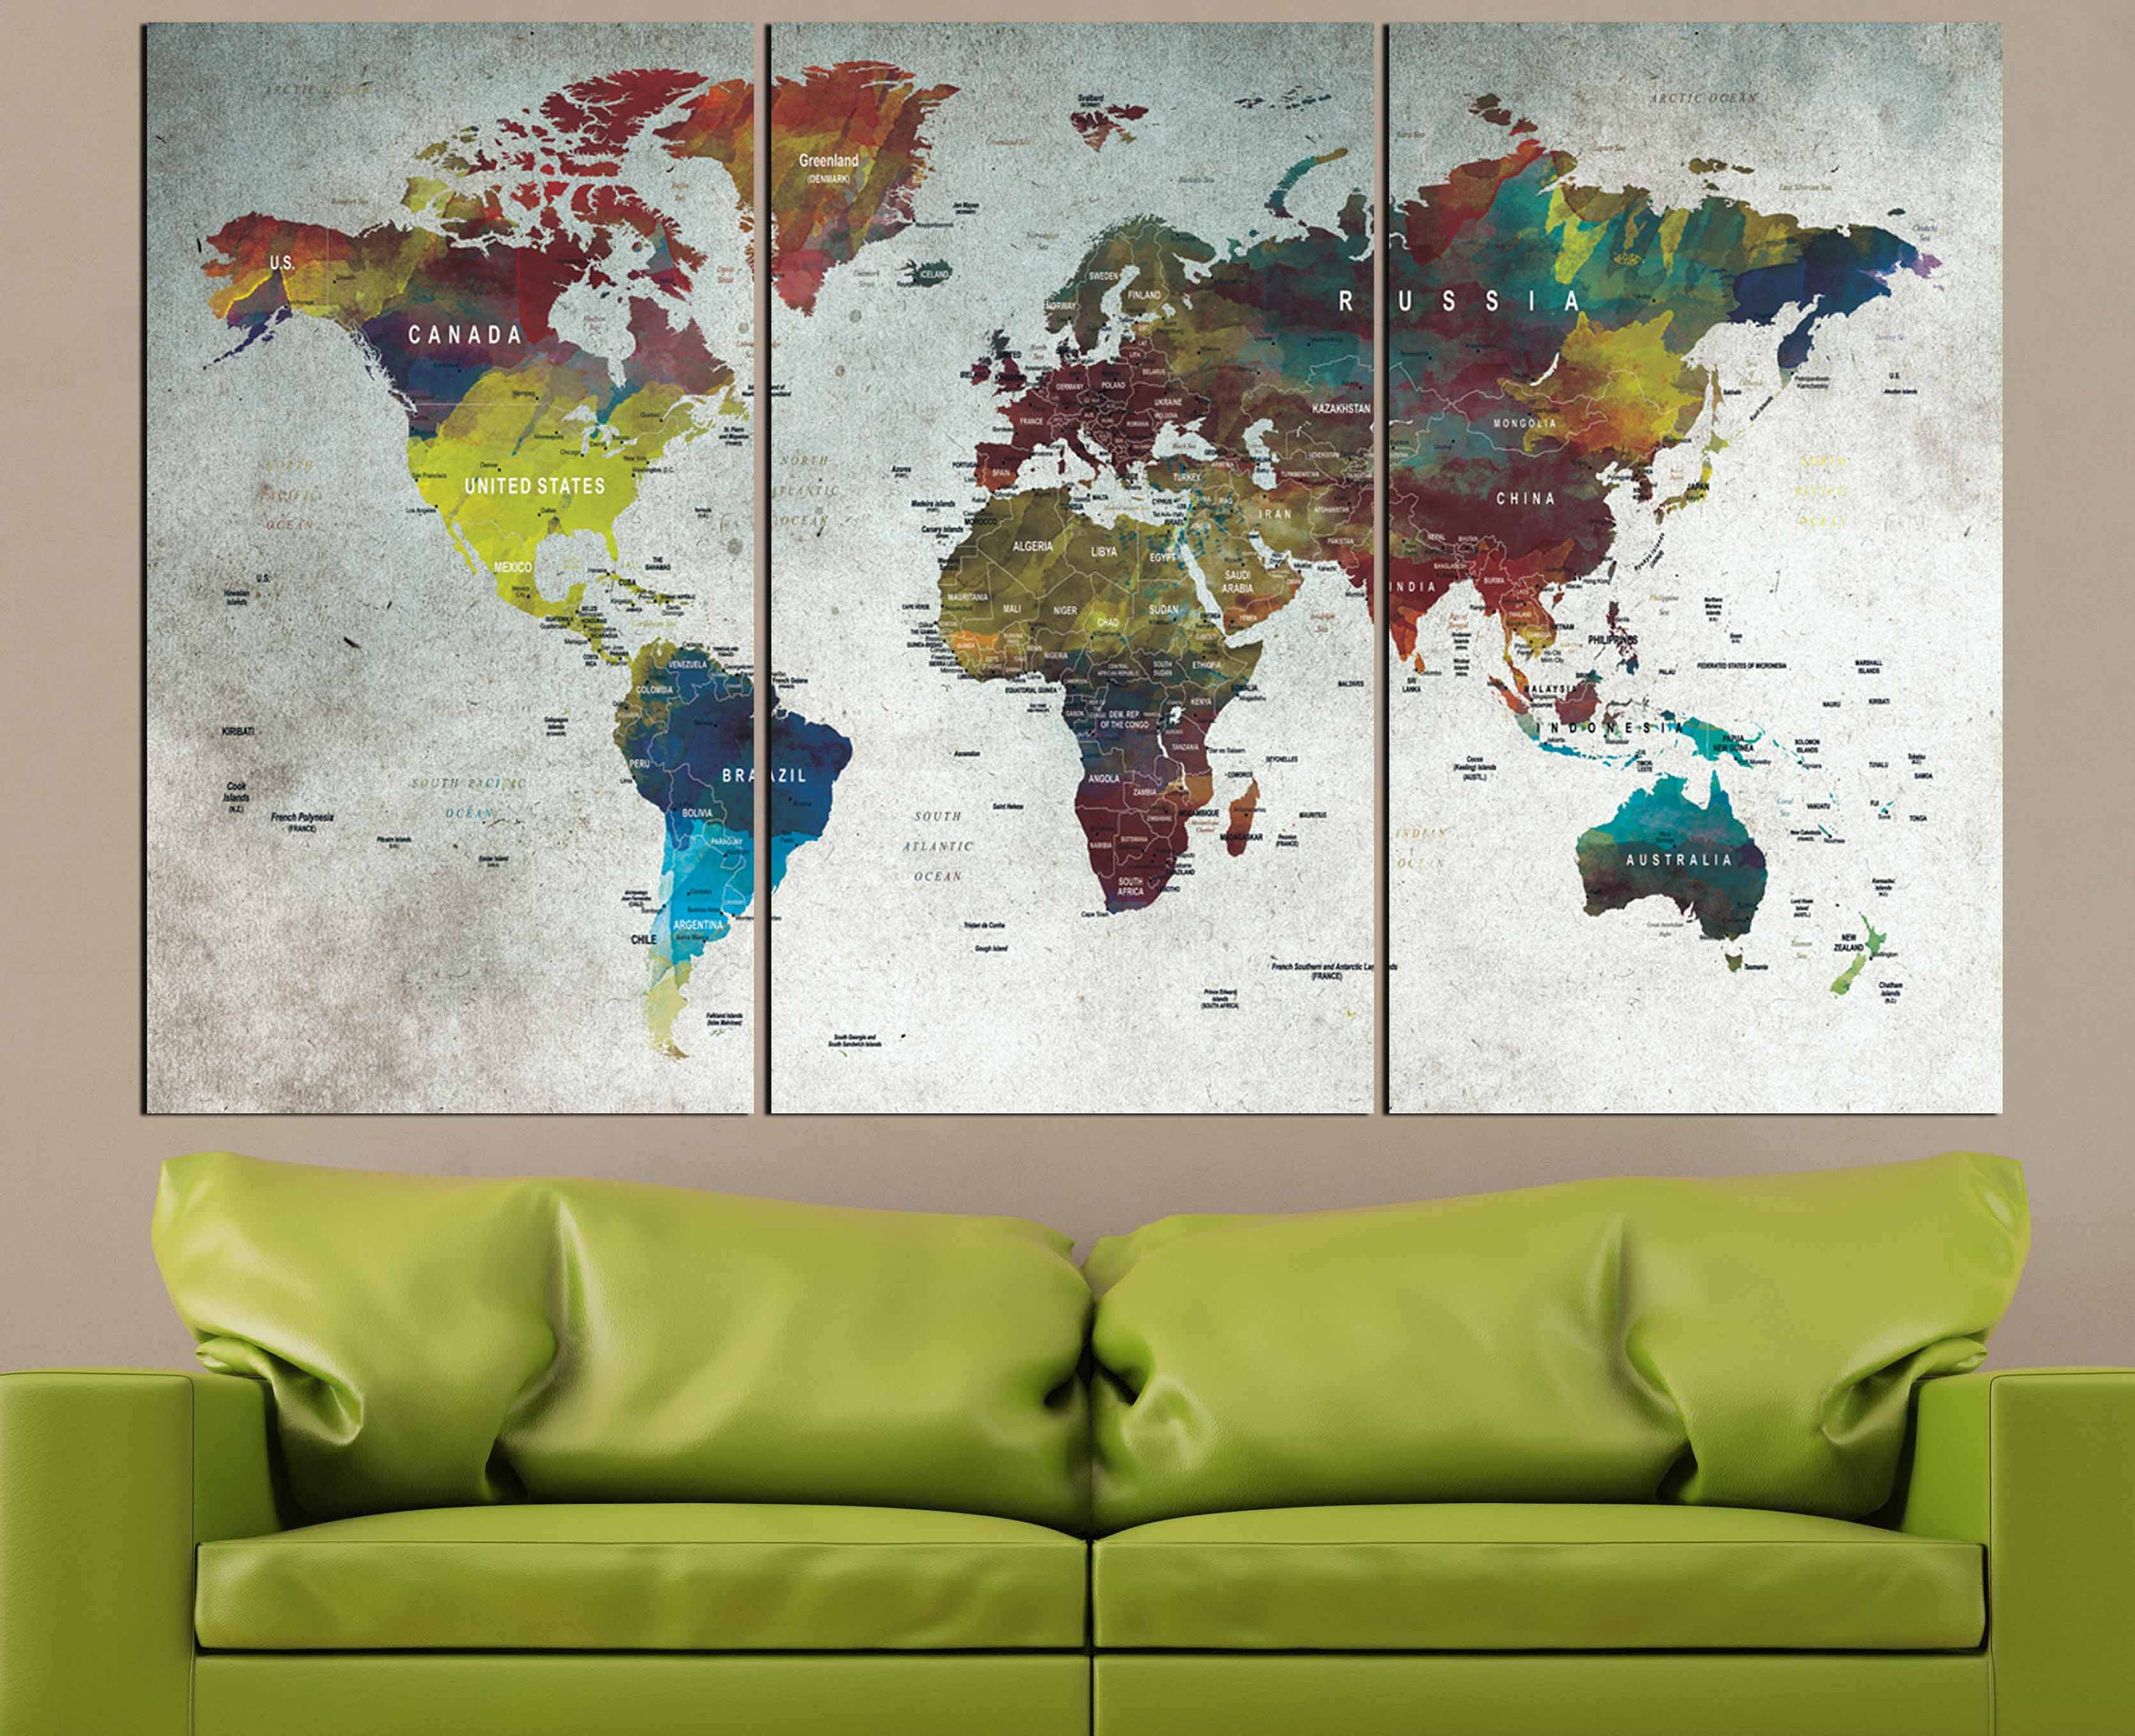 World mapmapwall artlarge world mappush pin mapabstract world world mapmapwall artlarge world mappush pin mapabstract world mappush pin map canvasdecorative canvas artworld travel mapmap canvas gumiabroncs Images